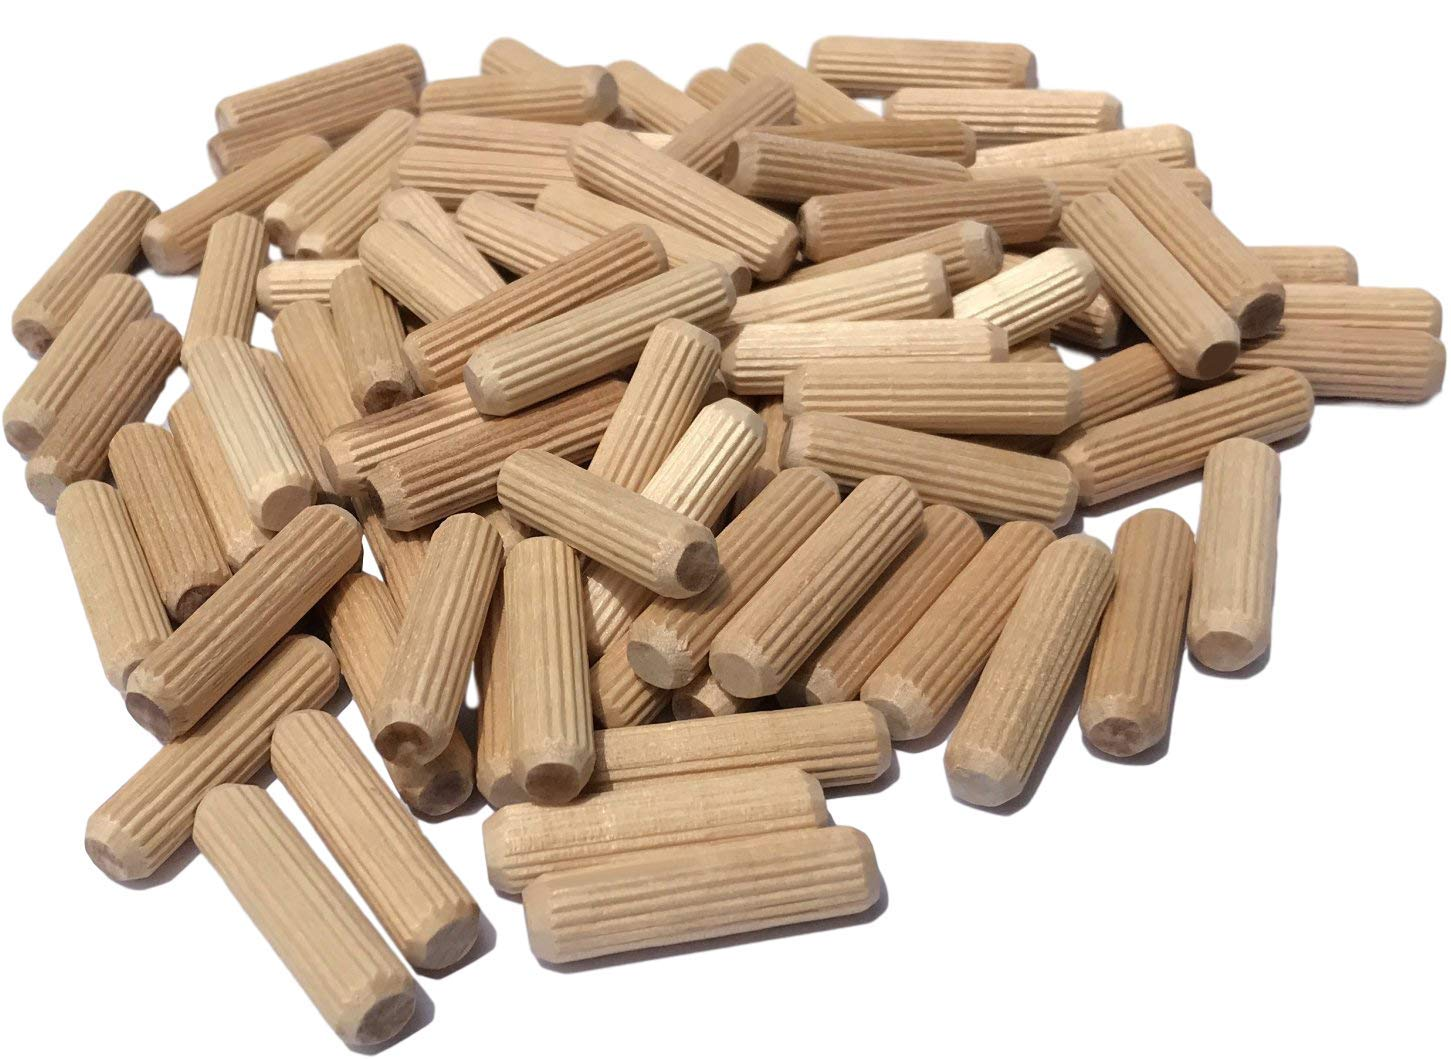 100 Pack 3/8'' x 1 1/2'' Wooden Dowel Pins Wood Kiln Dried Fluted and Beveled, made of Hardwood in U.S.A.